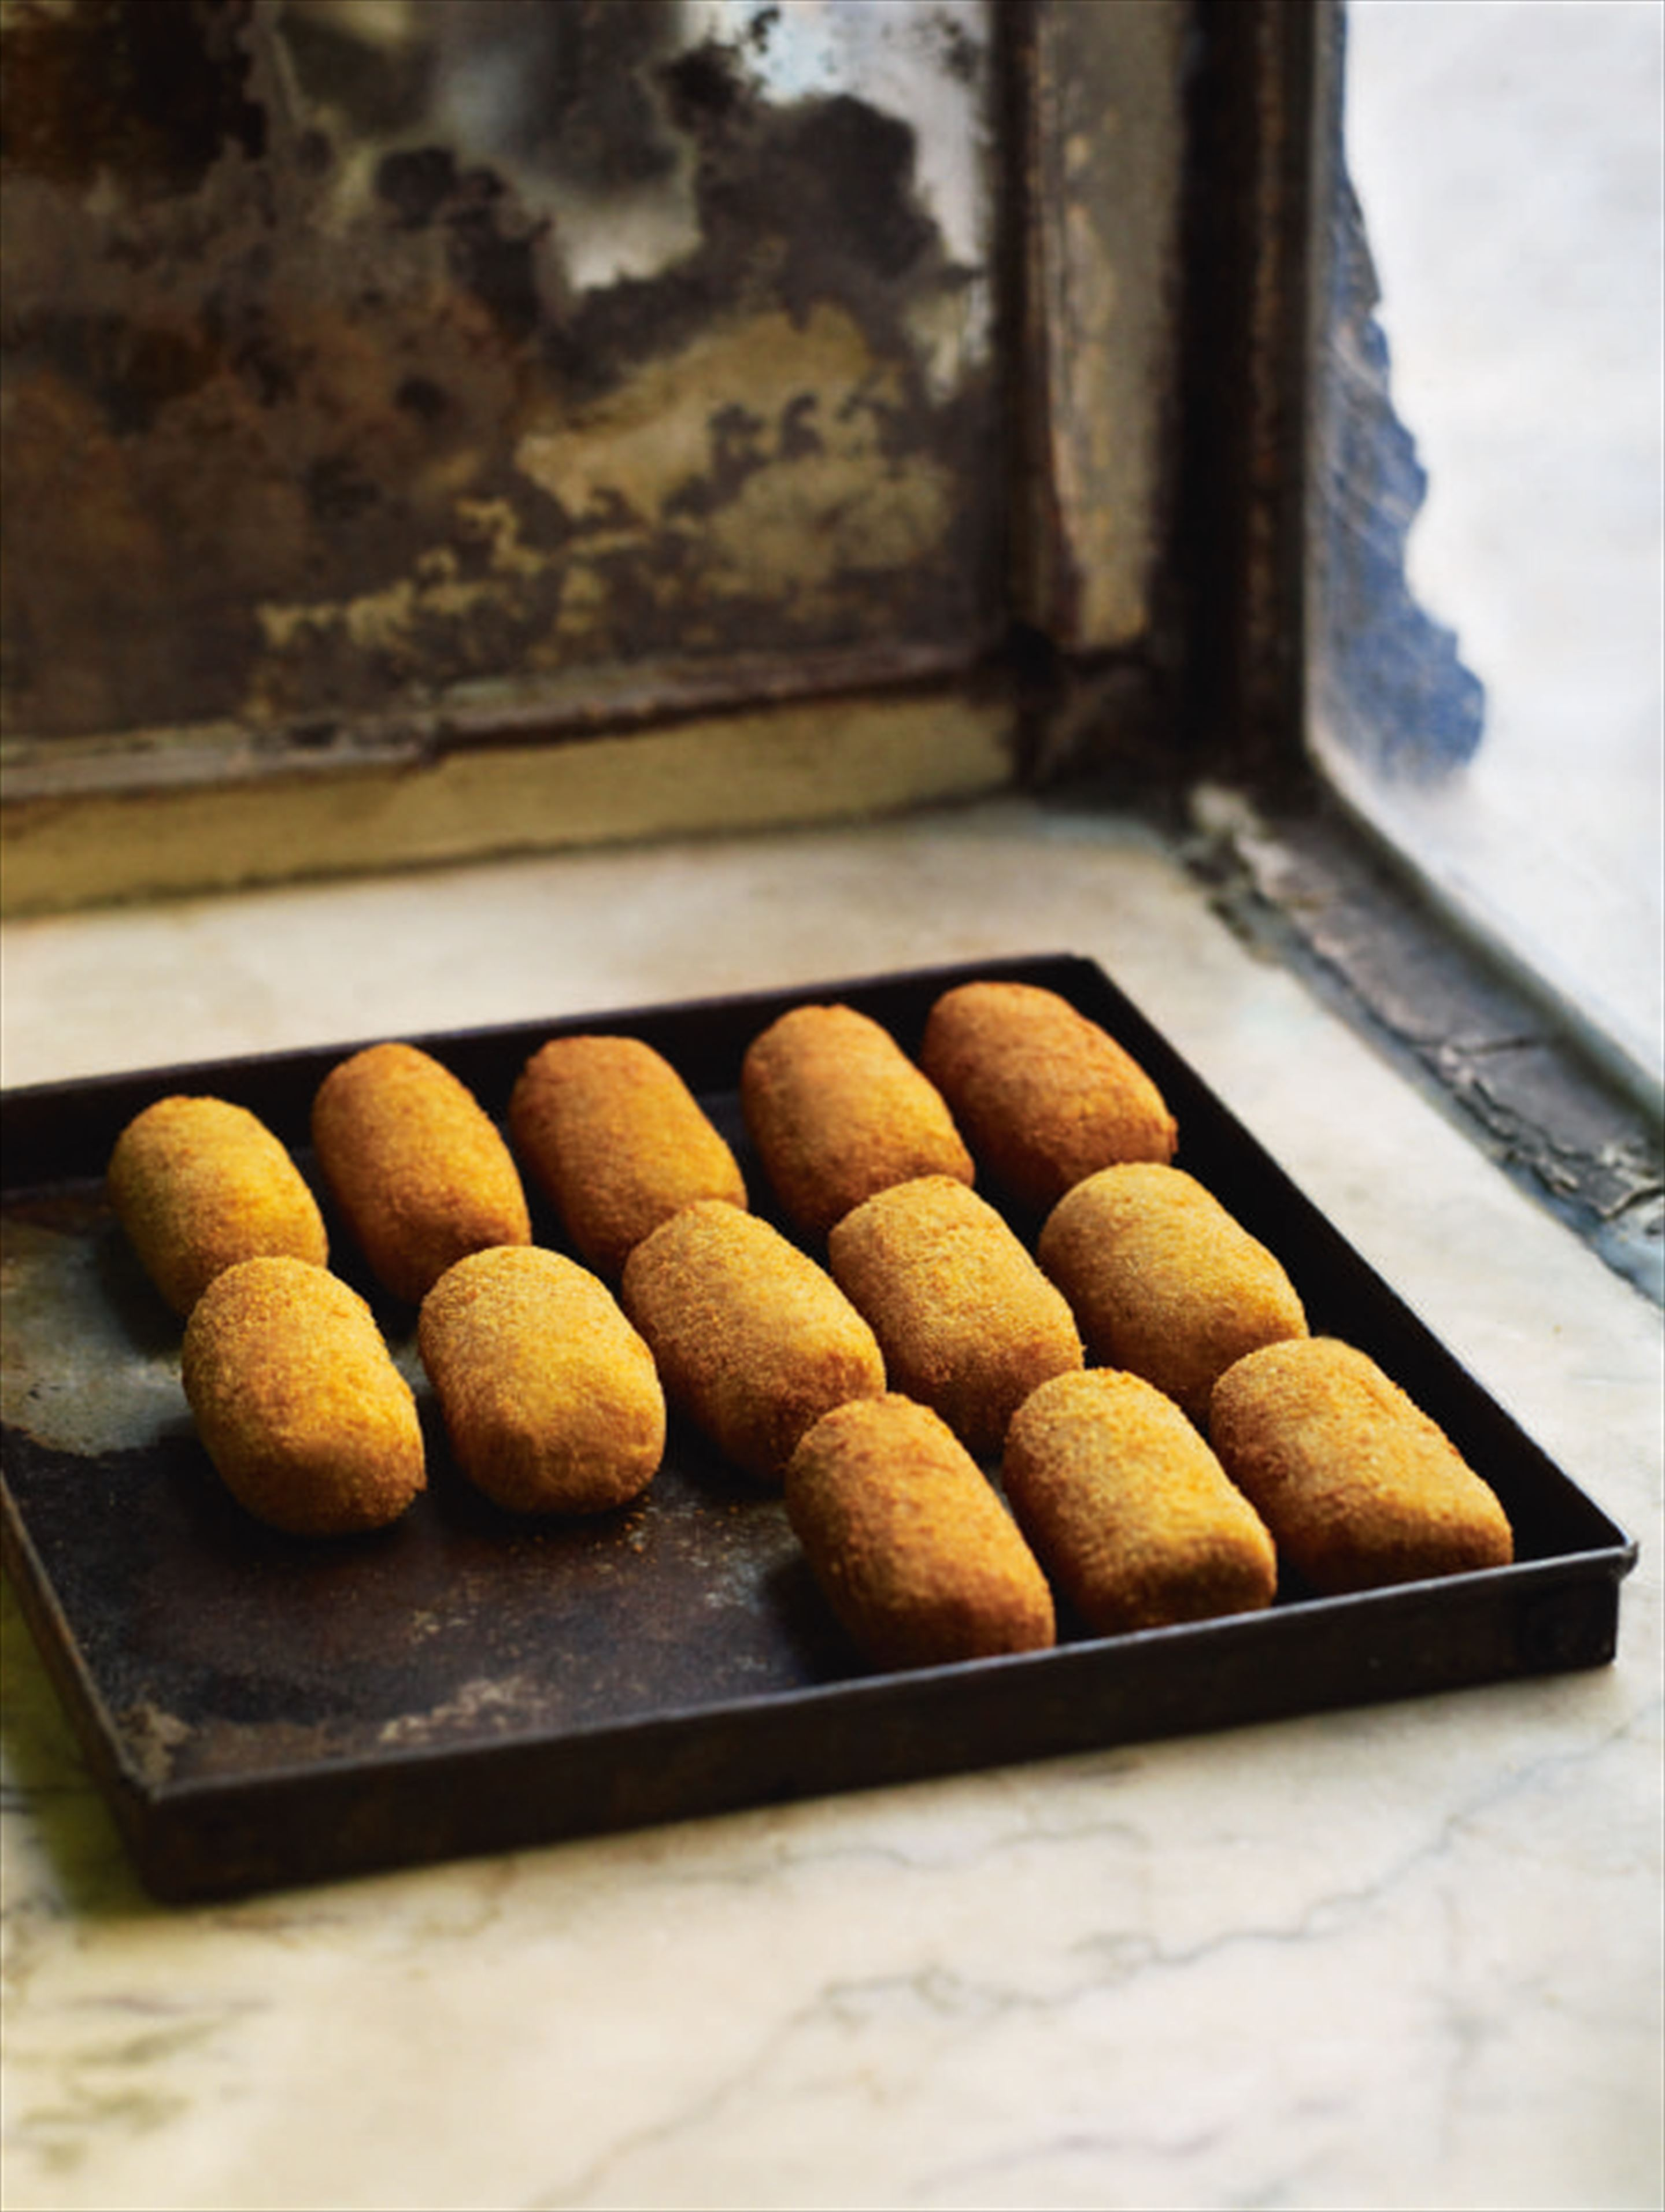 Pork and beef croquettes